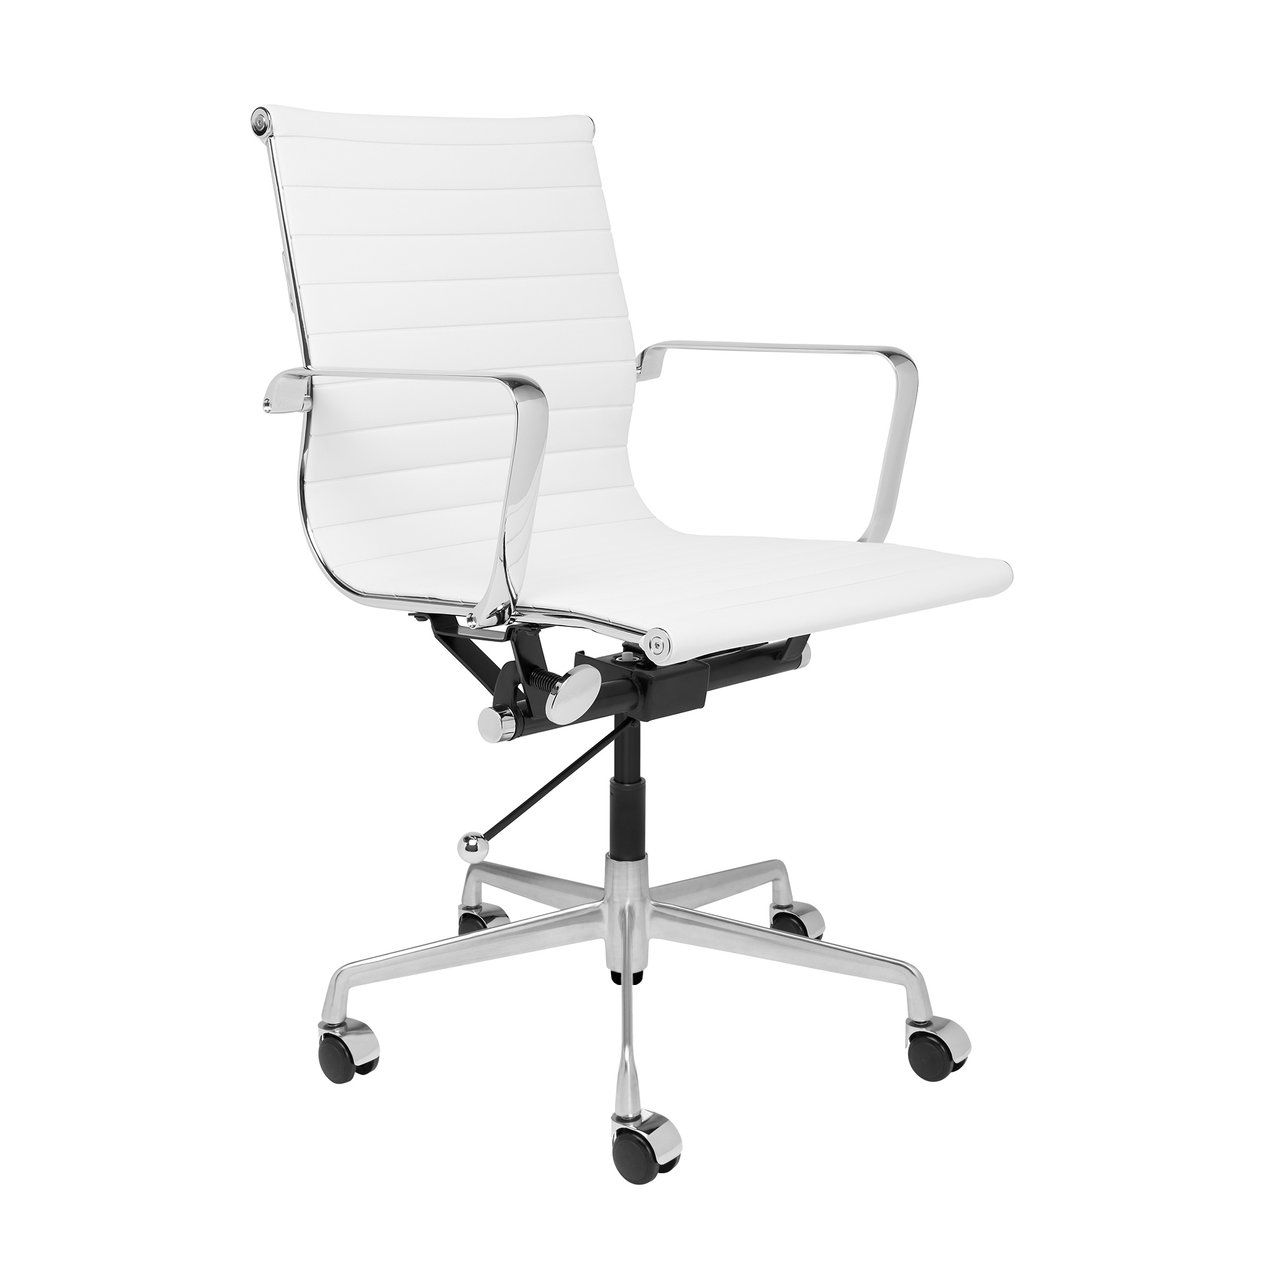 Soho Ribbed Management Chair White In 2020 Mid Century Modern Office Chair Office Chair Design Mid Century Modern Office